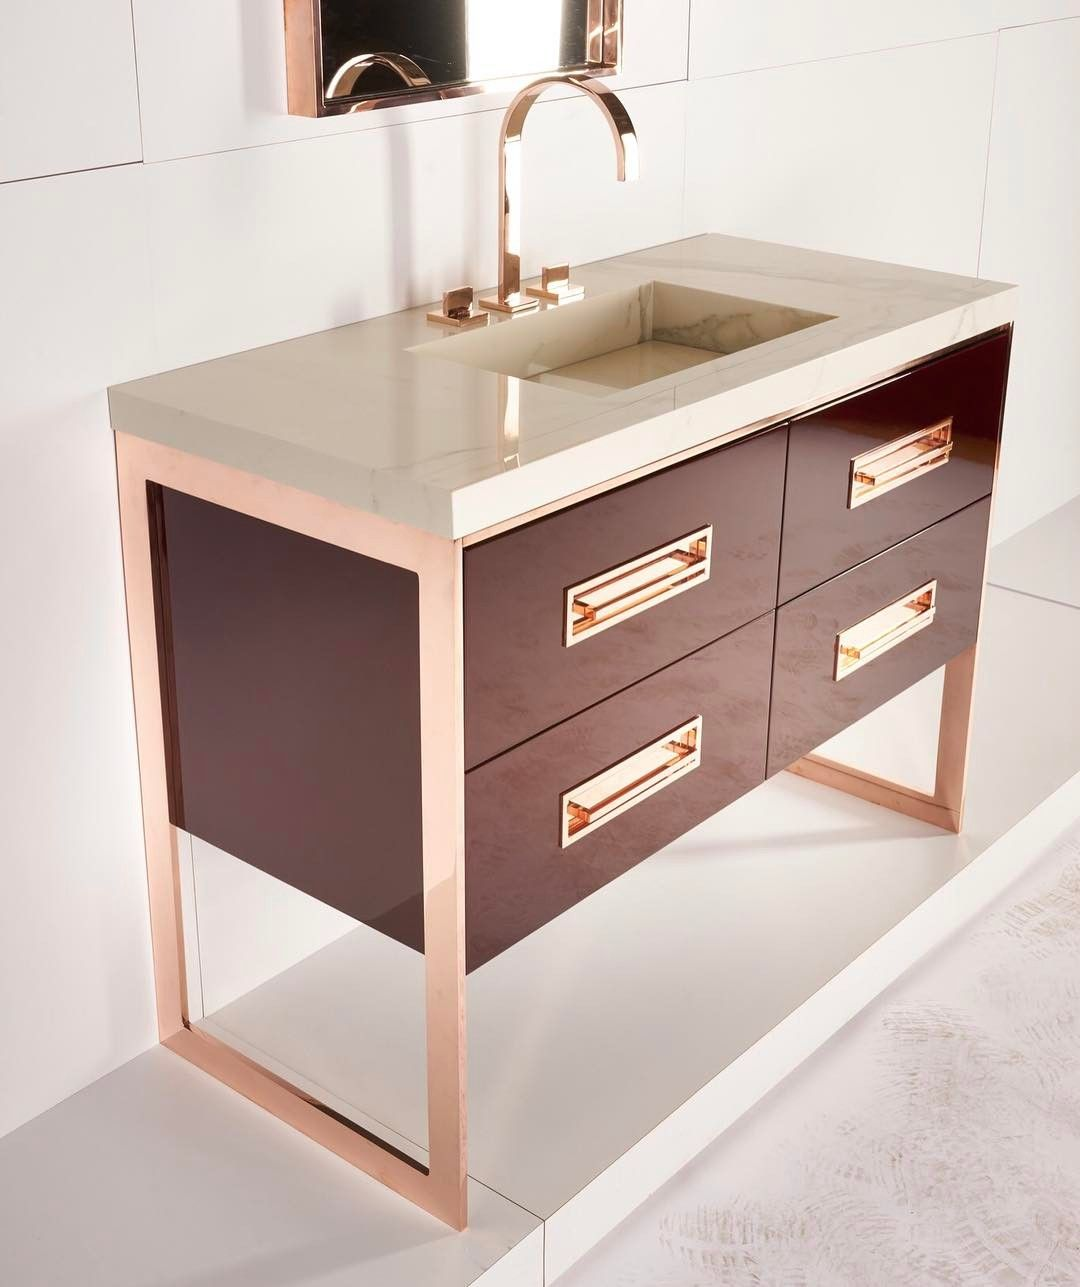 Only At Icff New Alton Design Shown In Rosegold And Aubergine